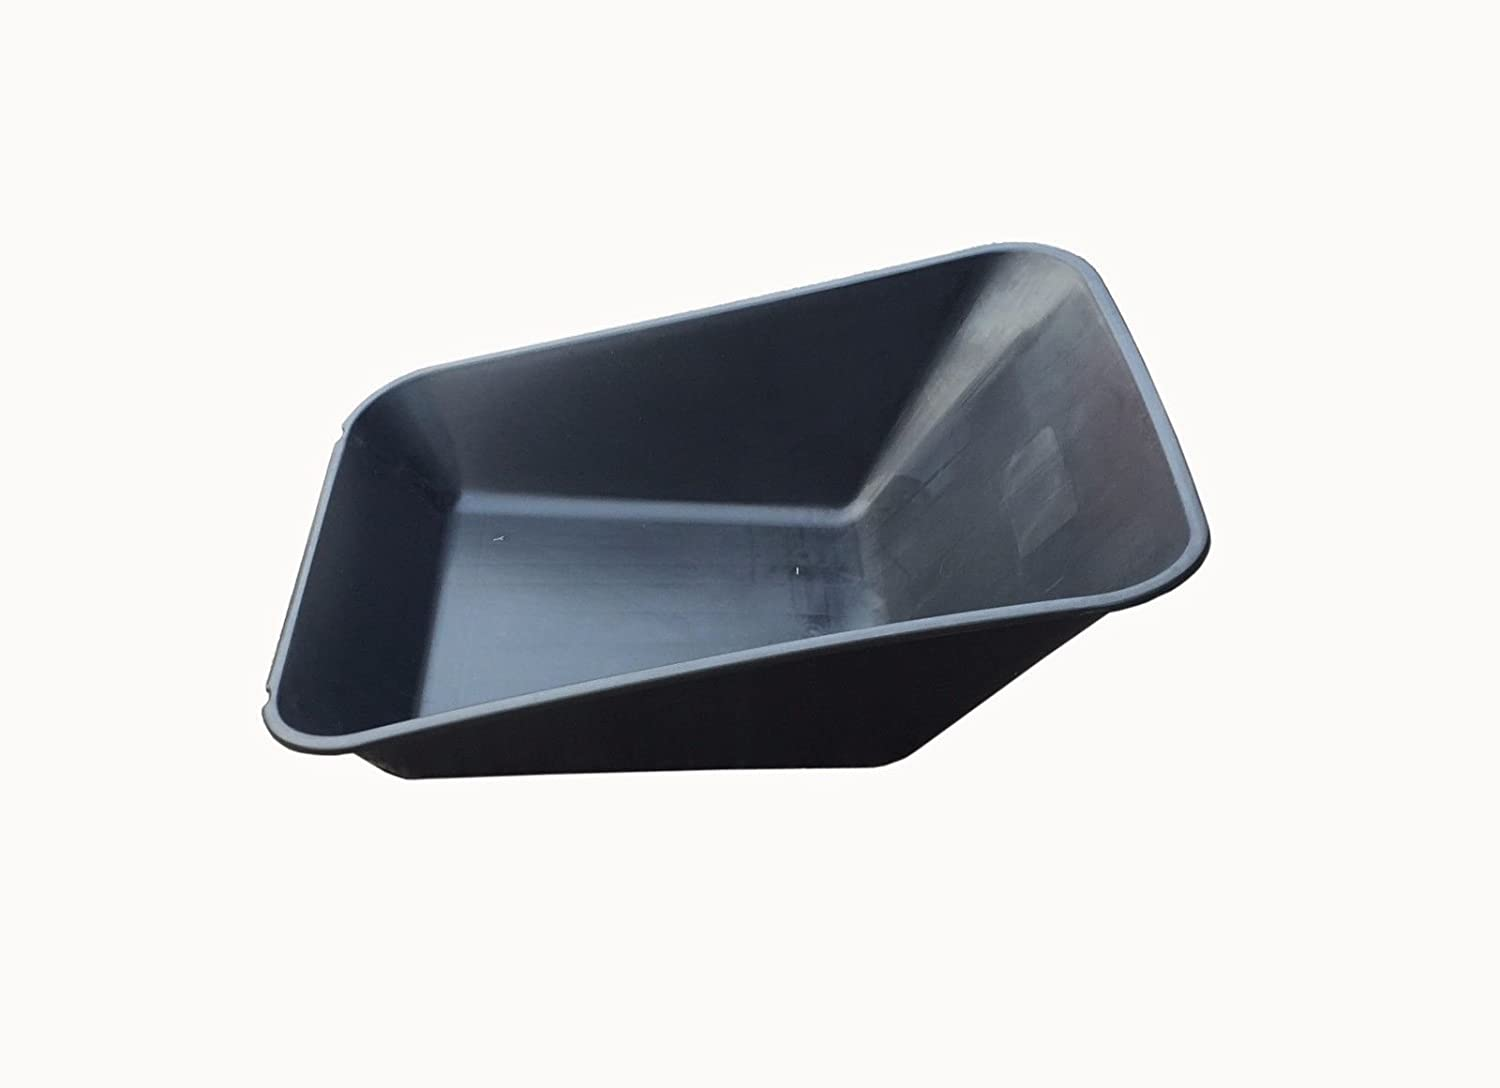 WHEEL BARROW BLACK REPLACEMENT PLASTIC BODY 85LITRE/ NO HOLES MADE IN UK ketoplastics